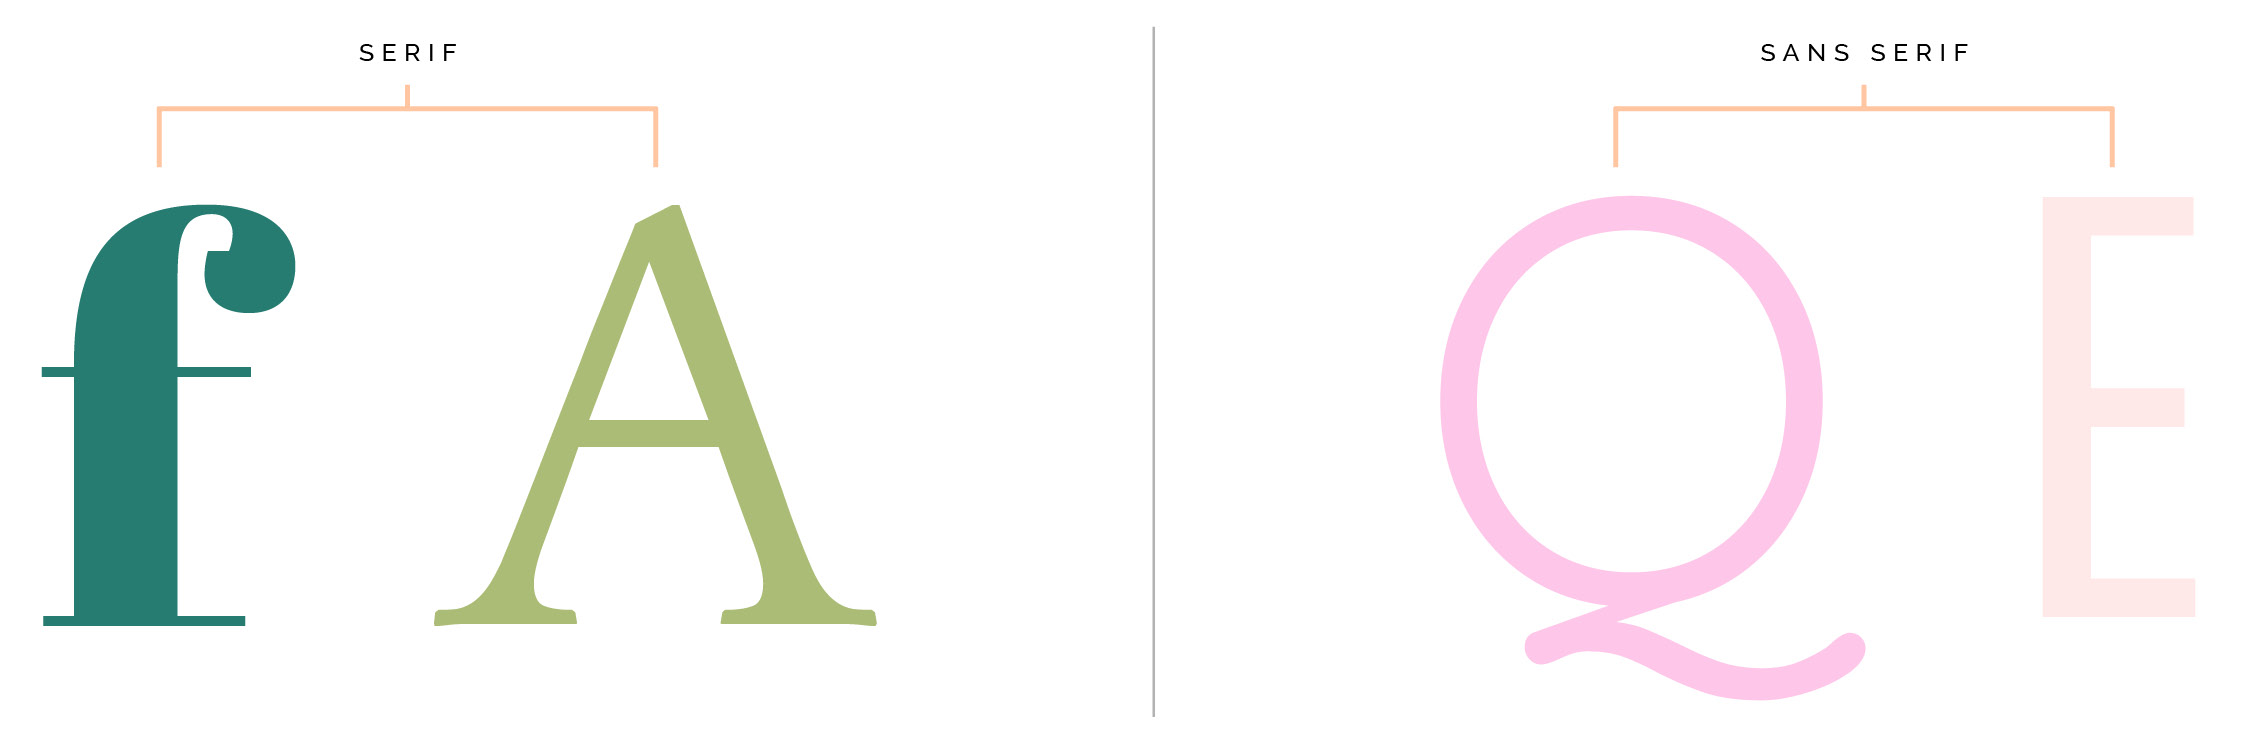 Difference between serif and sans serif font